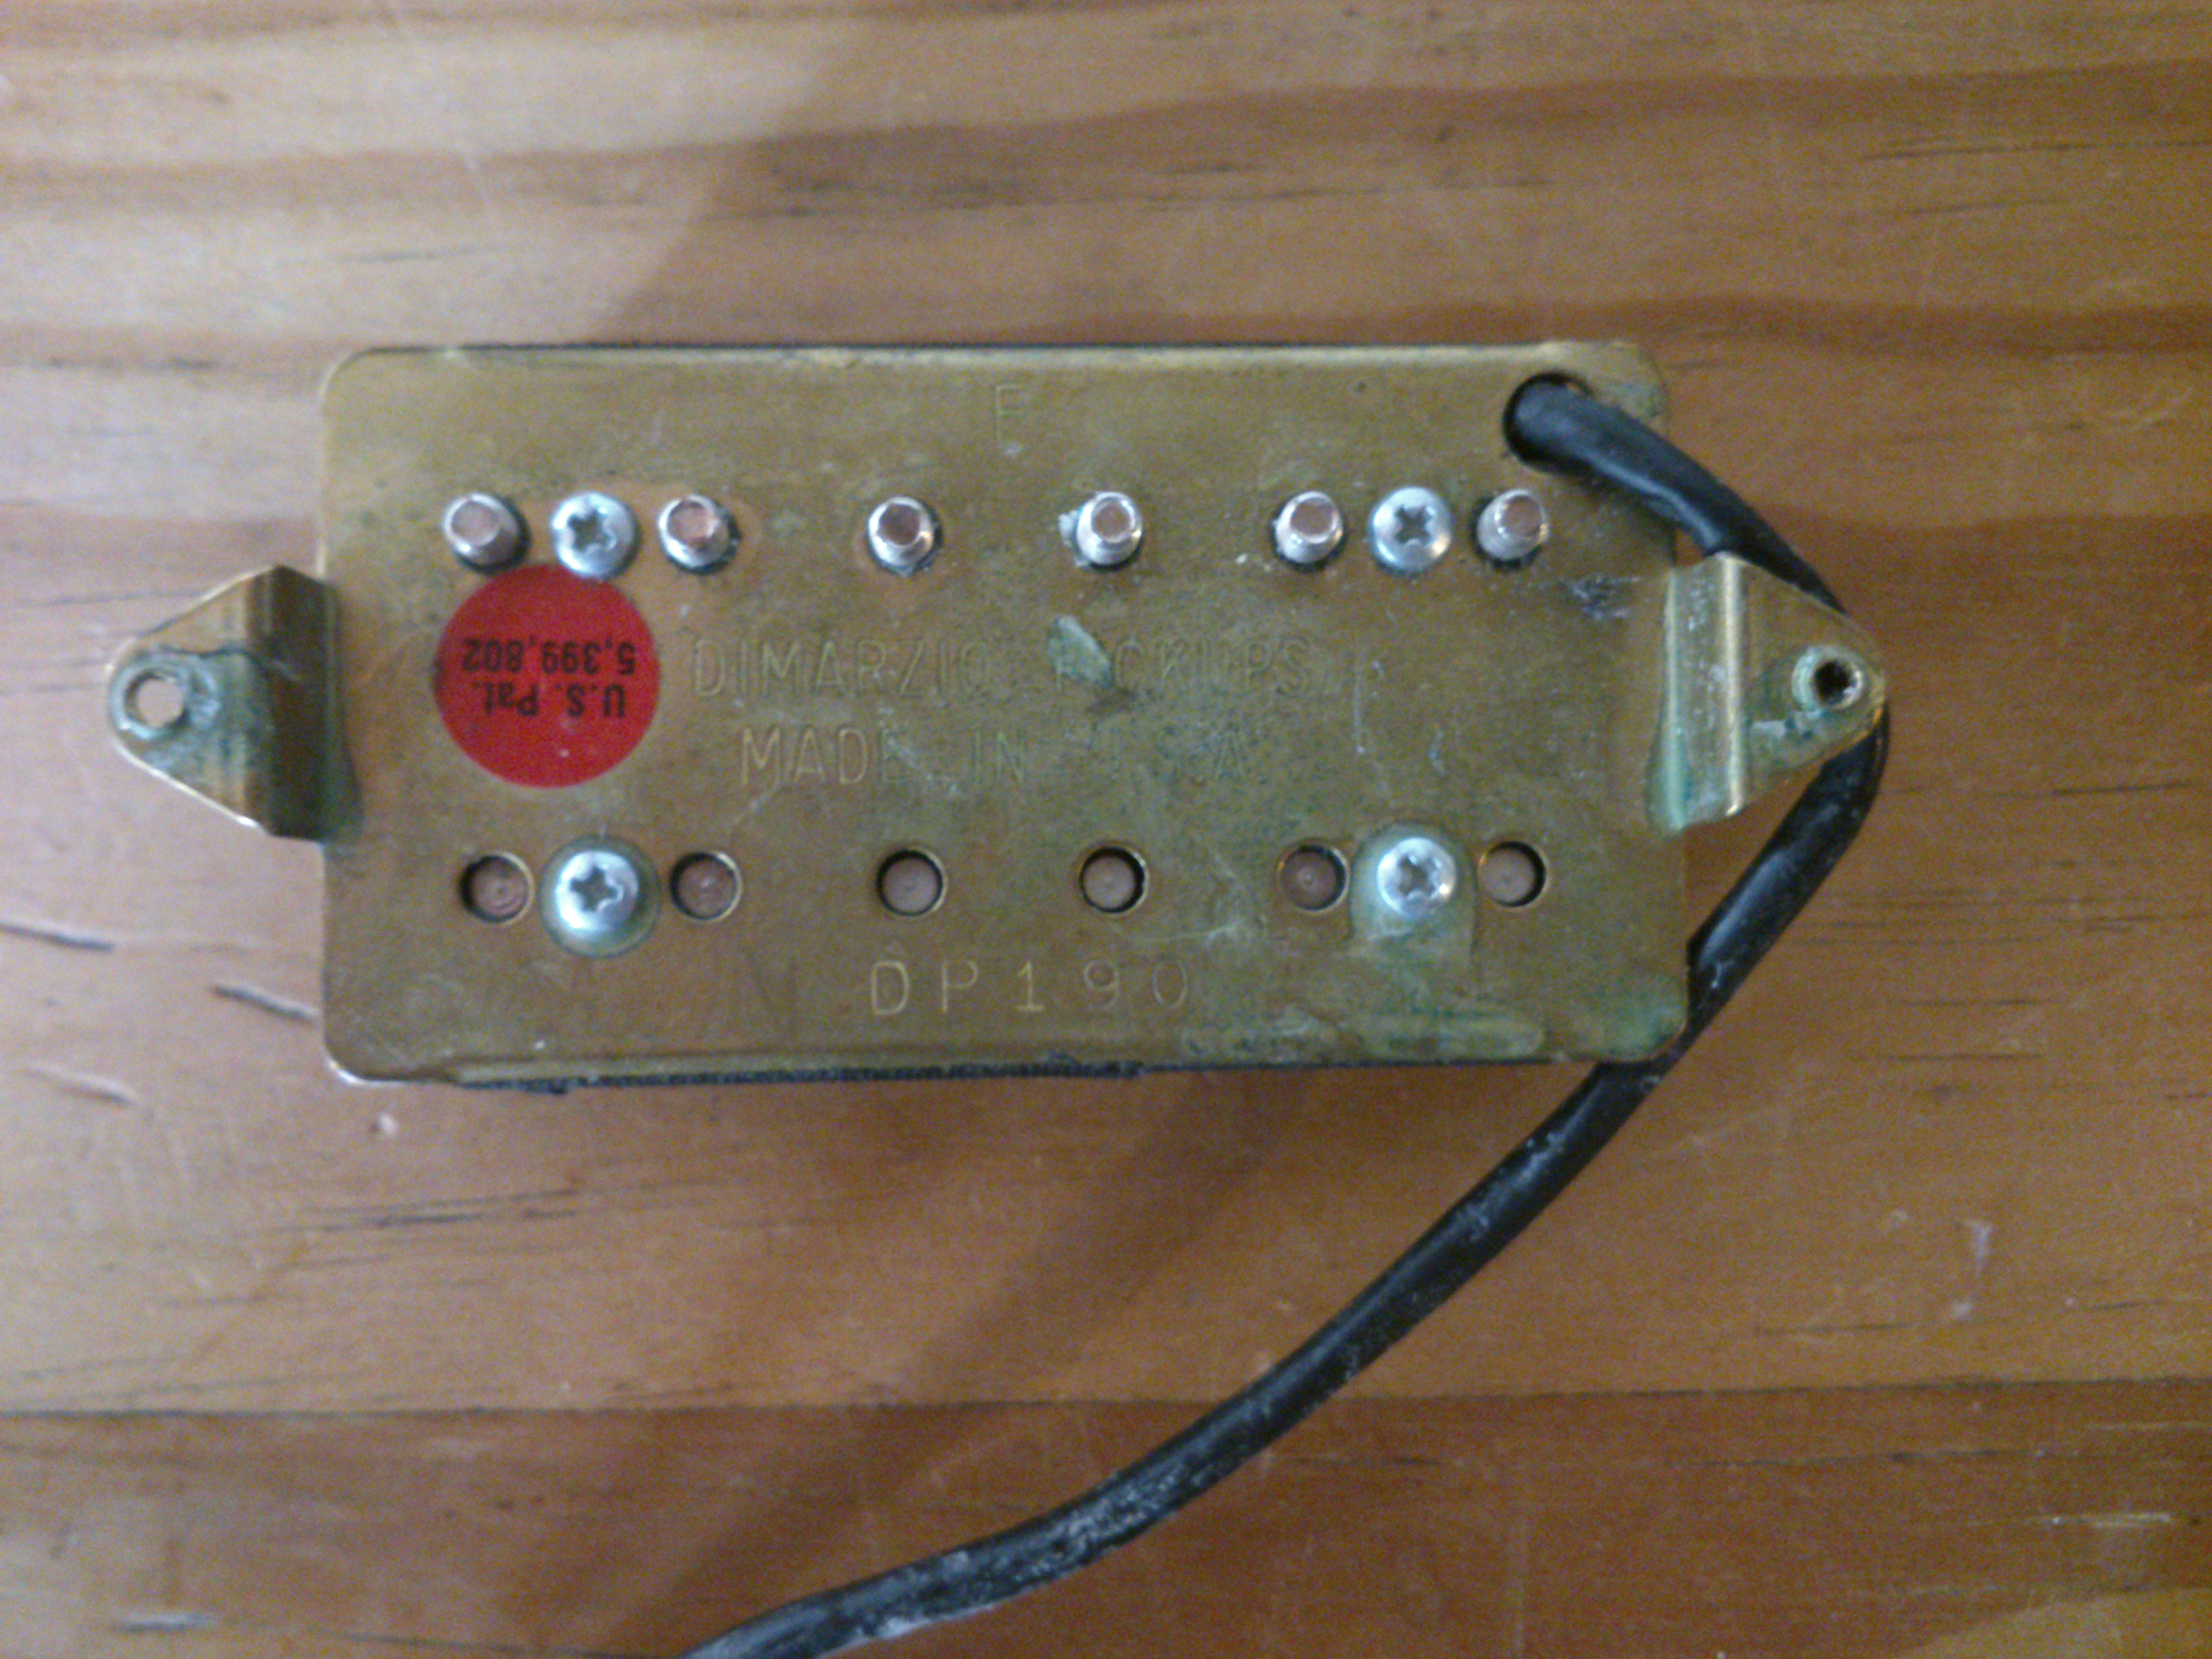 Unusual Two Humbuckers 5 Way Switch Big Hh 5 Way Switch Wiring Clean Gretsch Wiring Harness Solar Panel Diagram Young Solar Panel Wiring Guide FreshSolar Panel Diagrams DiMarzio DP190 Air Classic Neck Image (#733565)   Audiofanzine